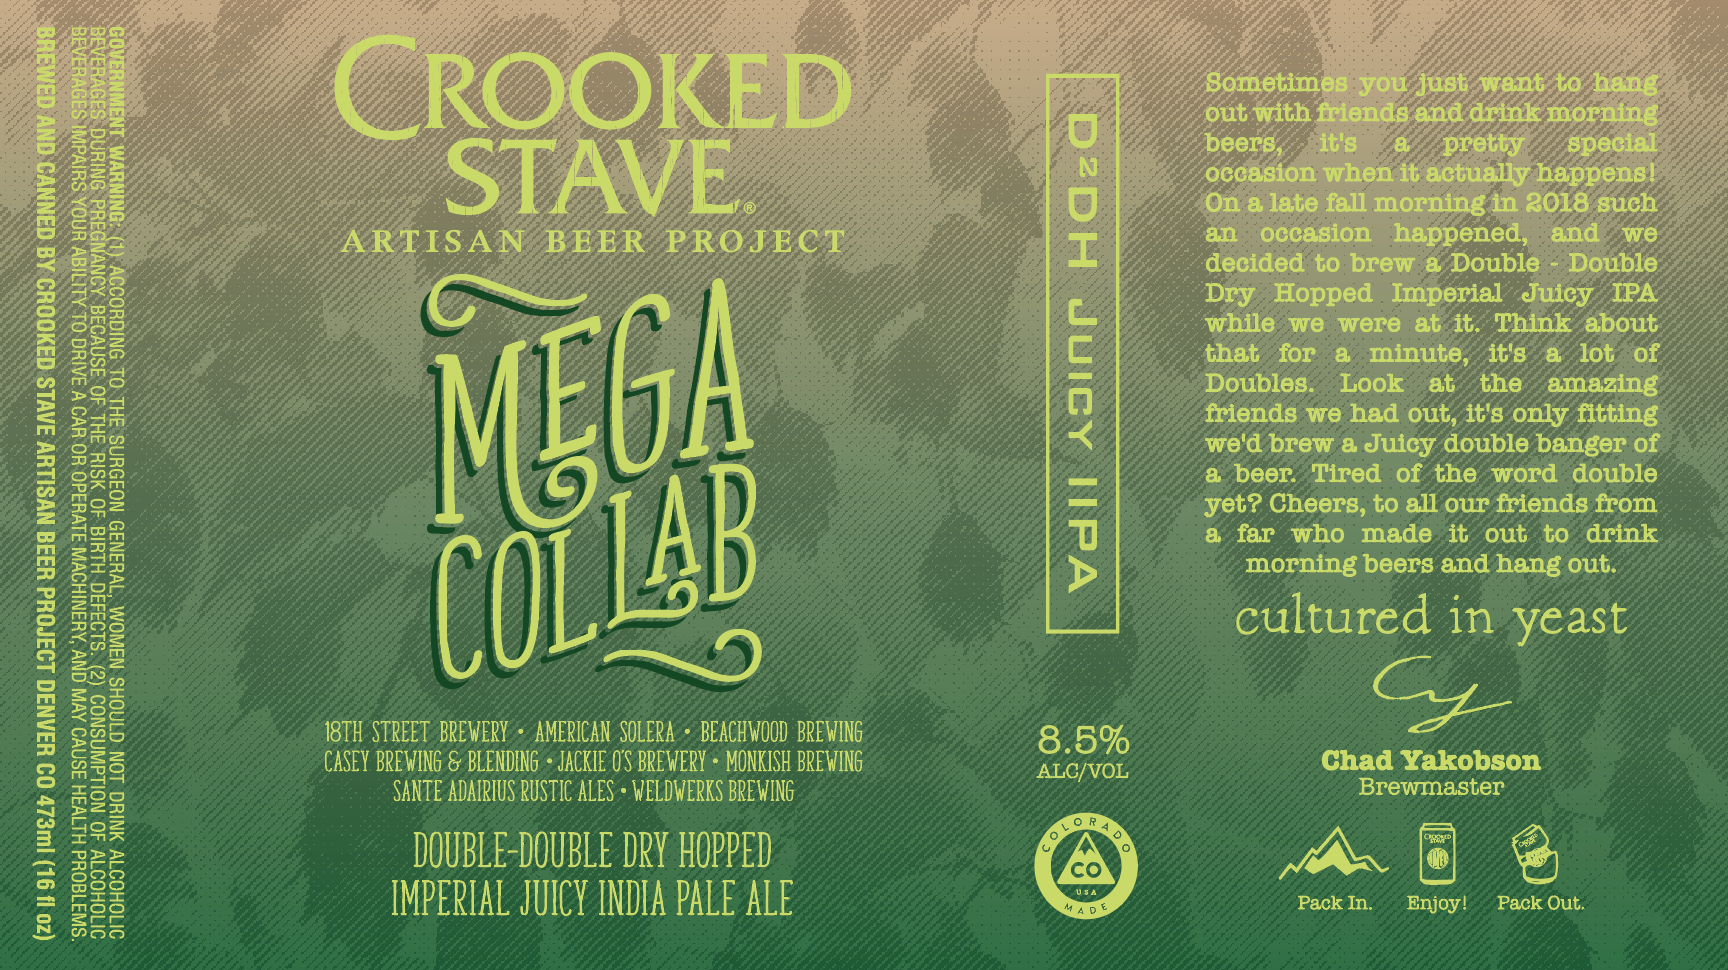 Crooked Stave Artisan Beer Project Announces Black Friday Releases